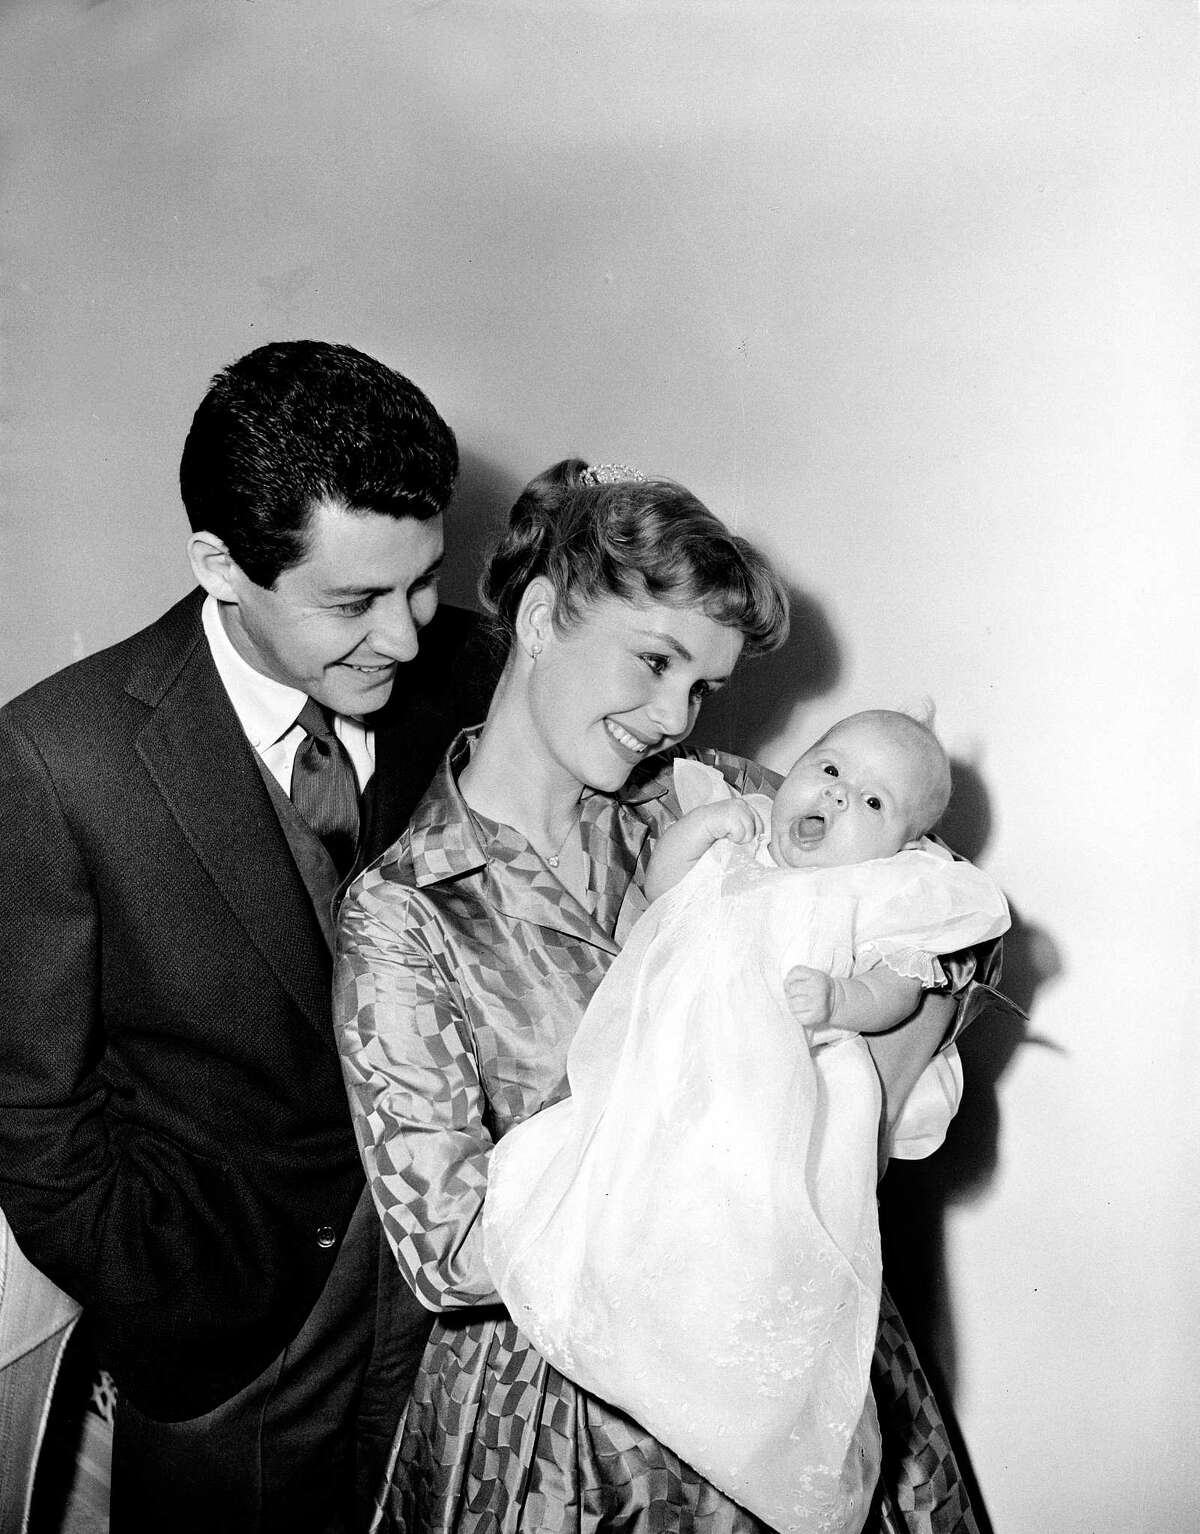 Actress Debbie Reynolds and her husband, singer Eddie Fisher, pose with their ten-week-old daughter Carrie Frances for the first family picture, January 2, 1957, in Hollywood, California. (AP Photo)